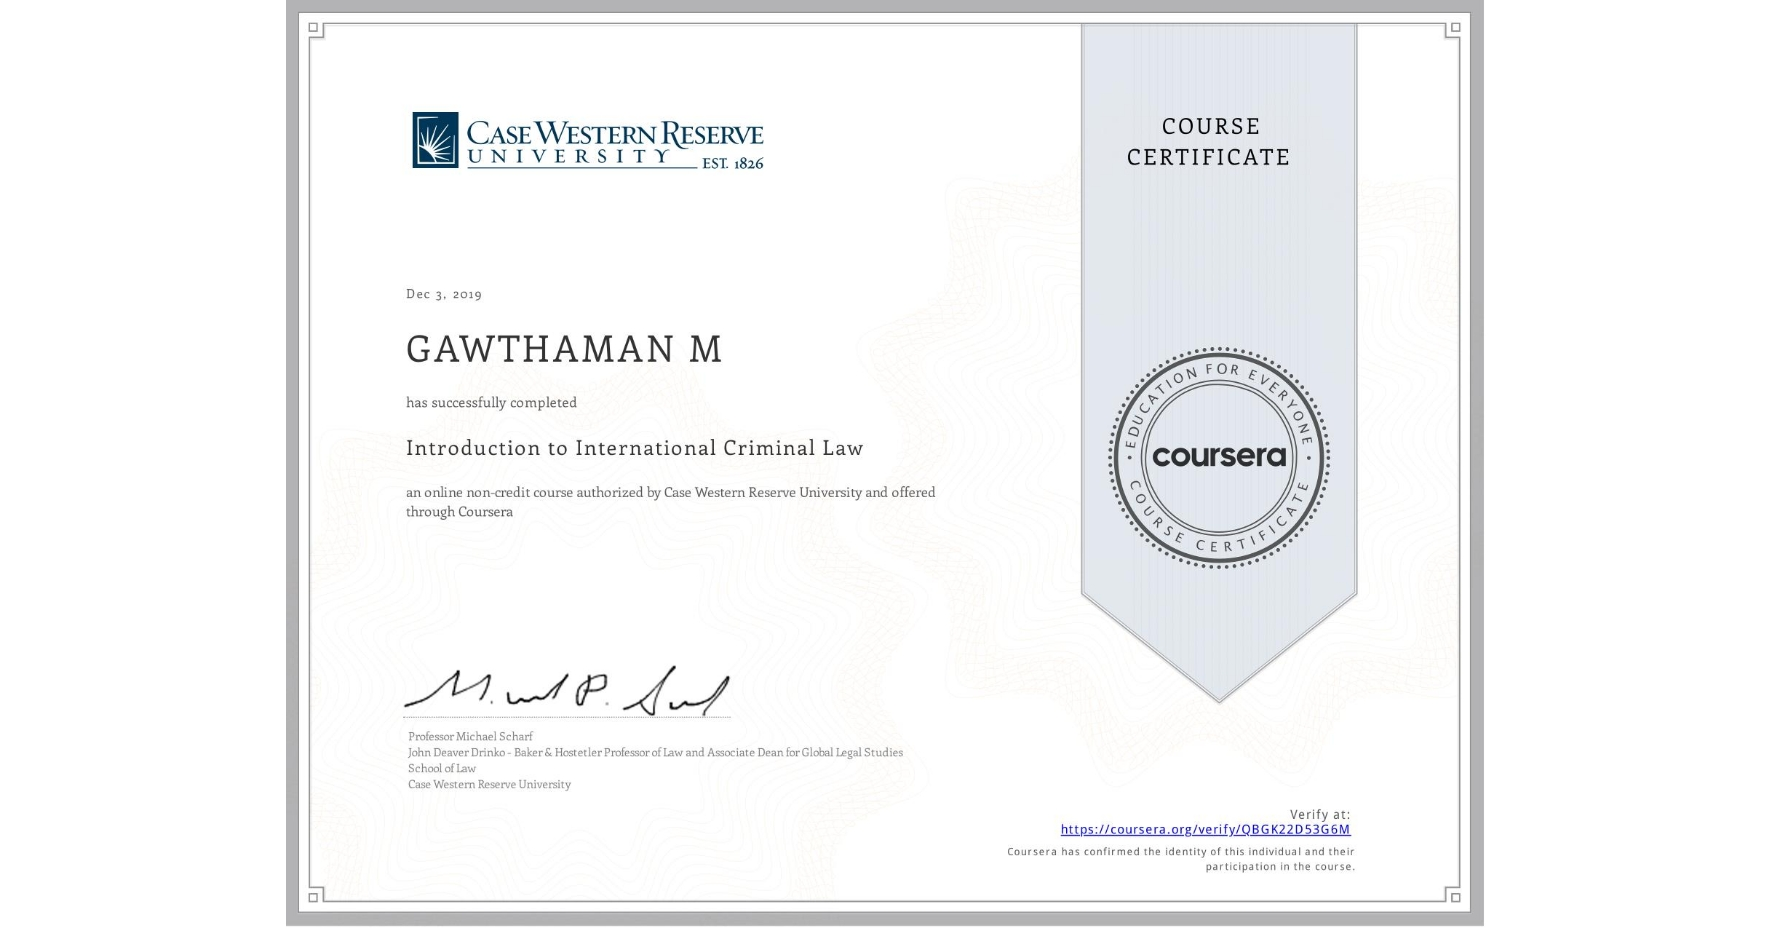 View certificate for GAWTHAMAN M, Introduction to International Criminal Law, an online non-credit course authorized by Case Western Reserve University and offered through Coursera